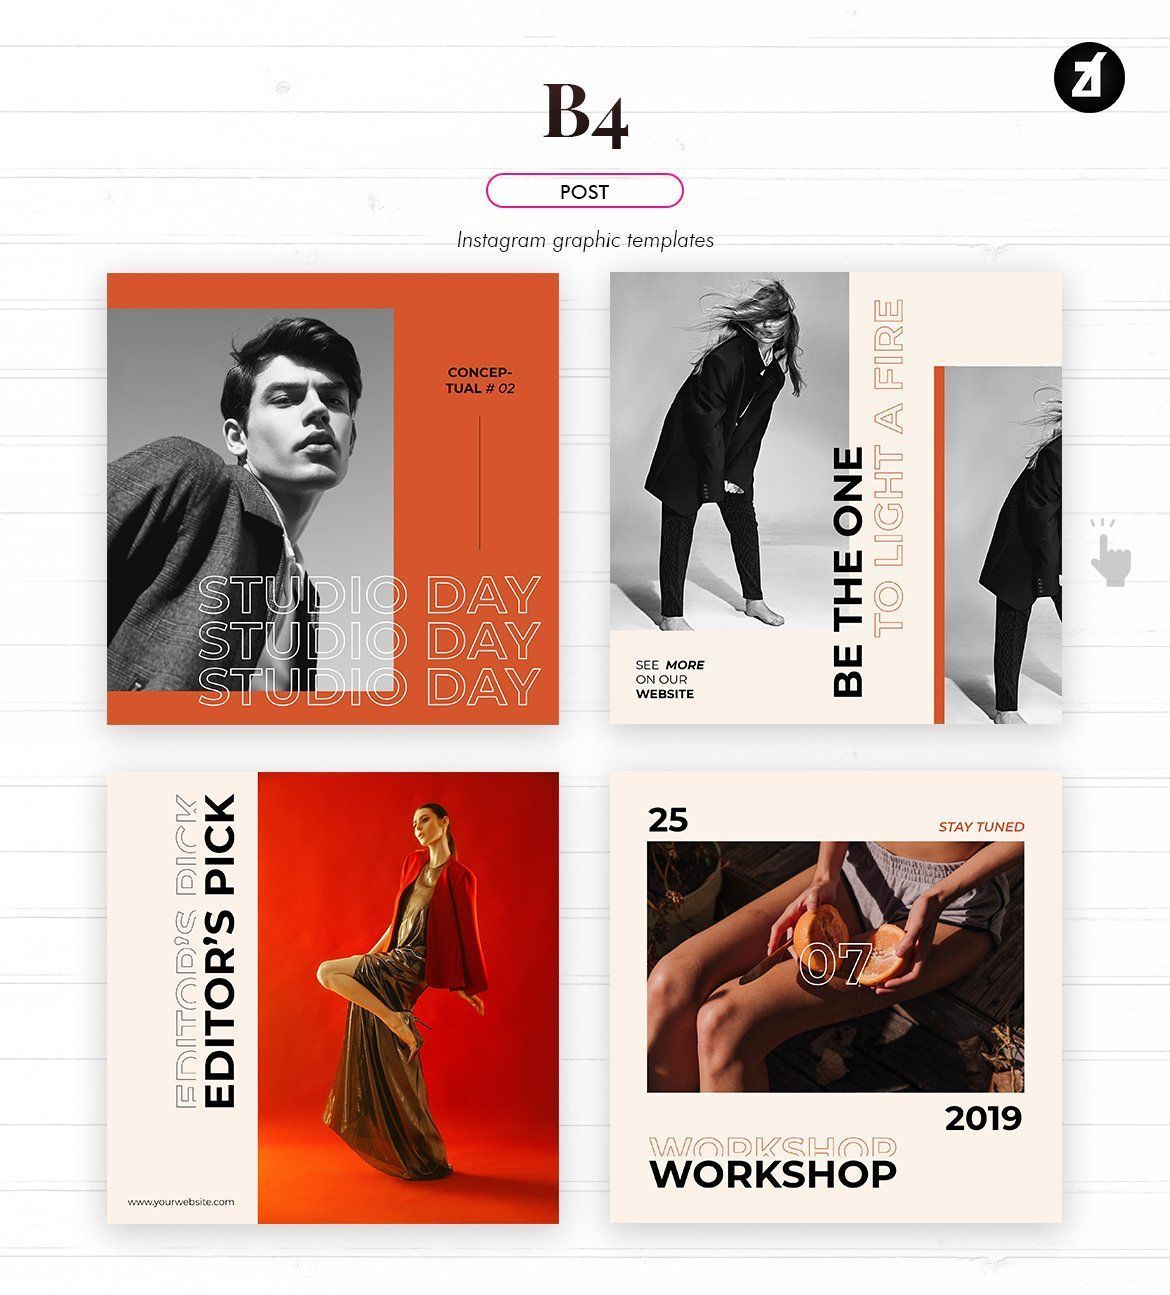 B4 social media graphic templates by Chanut is industries #elegant #post #insta